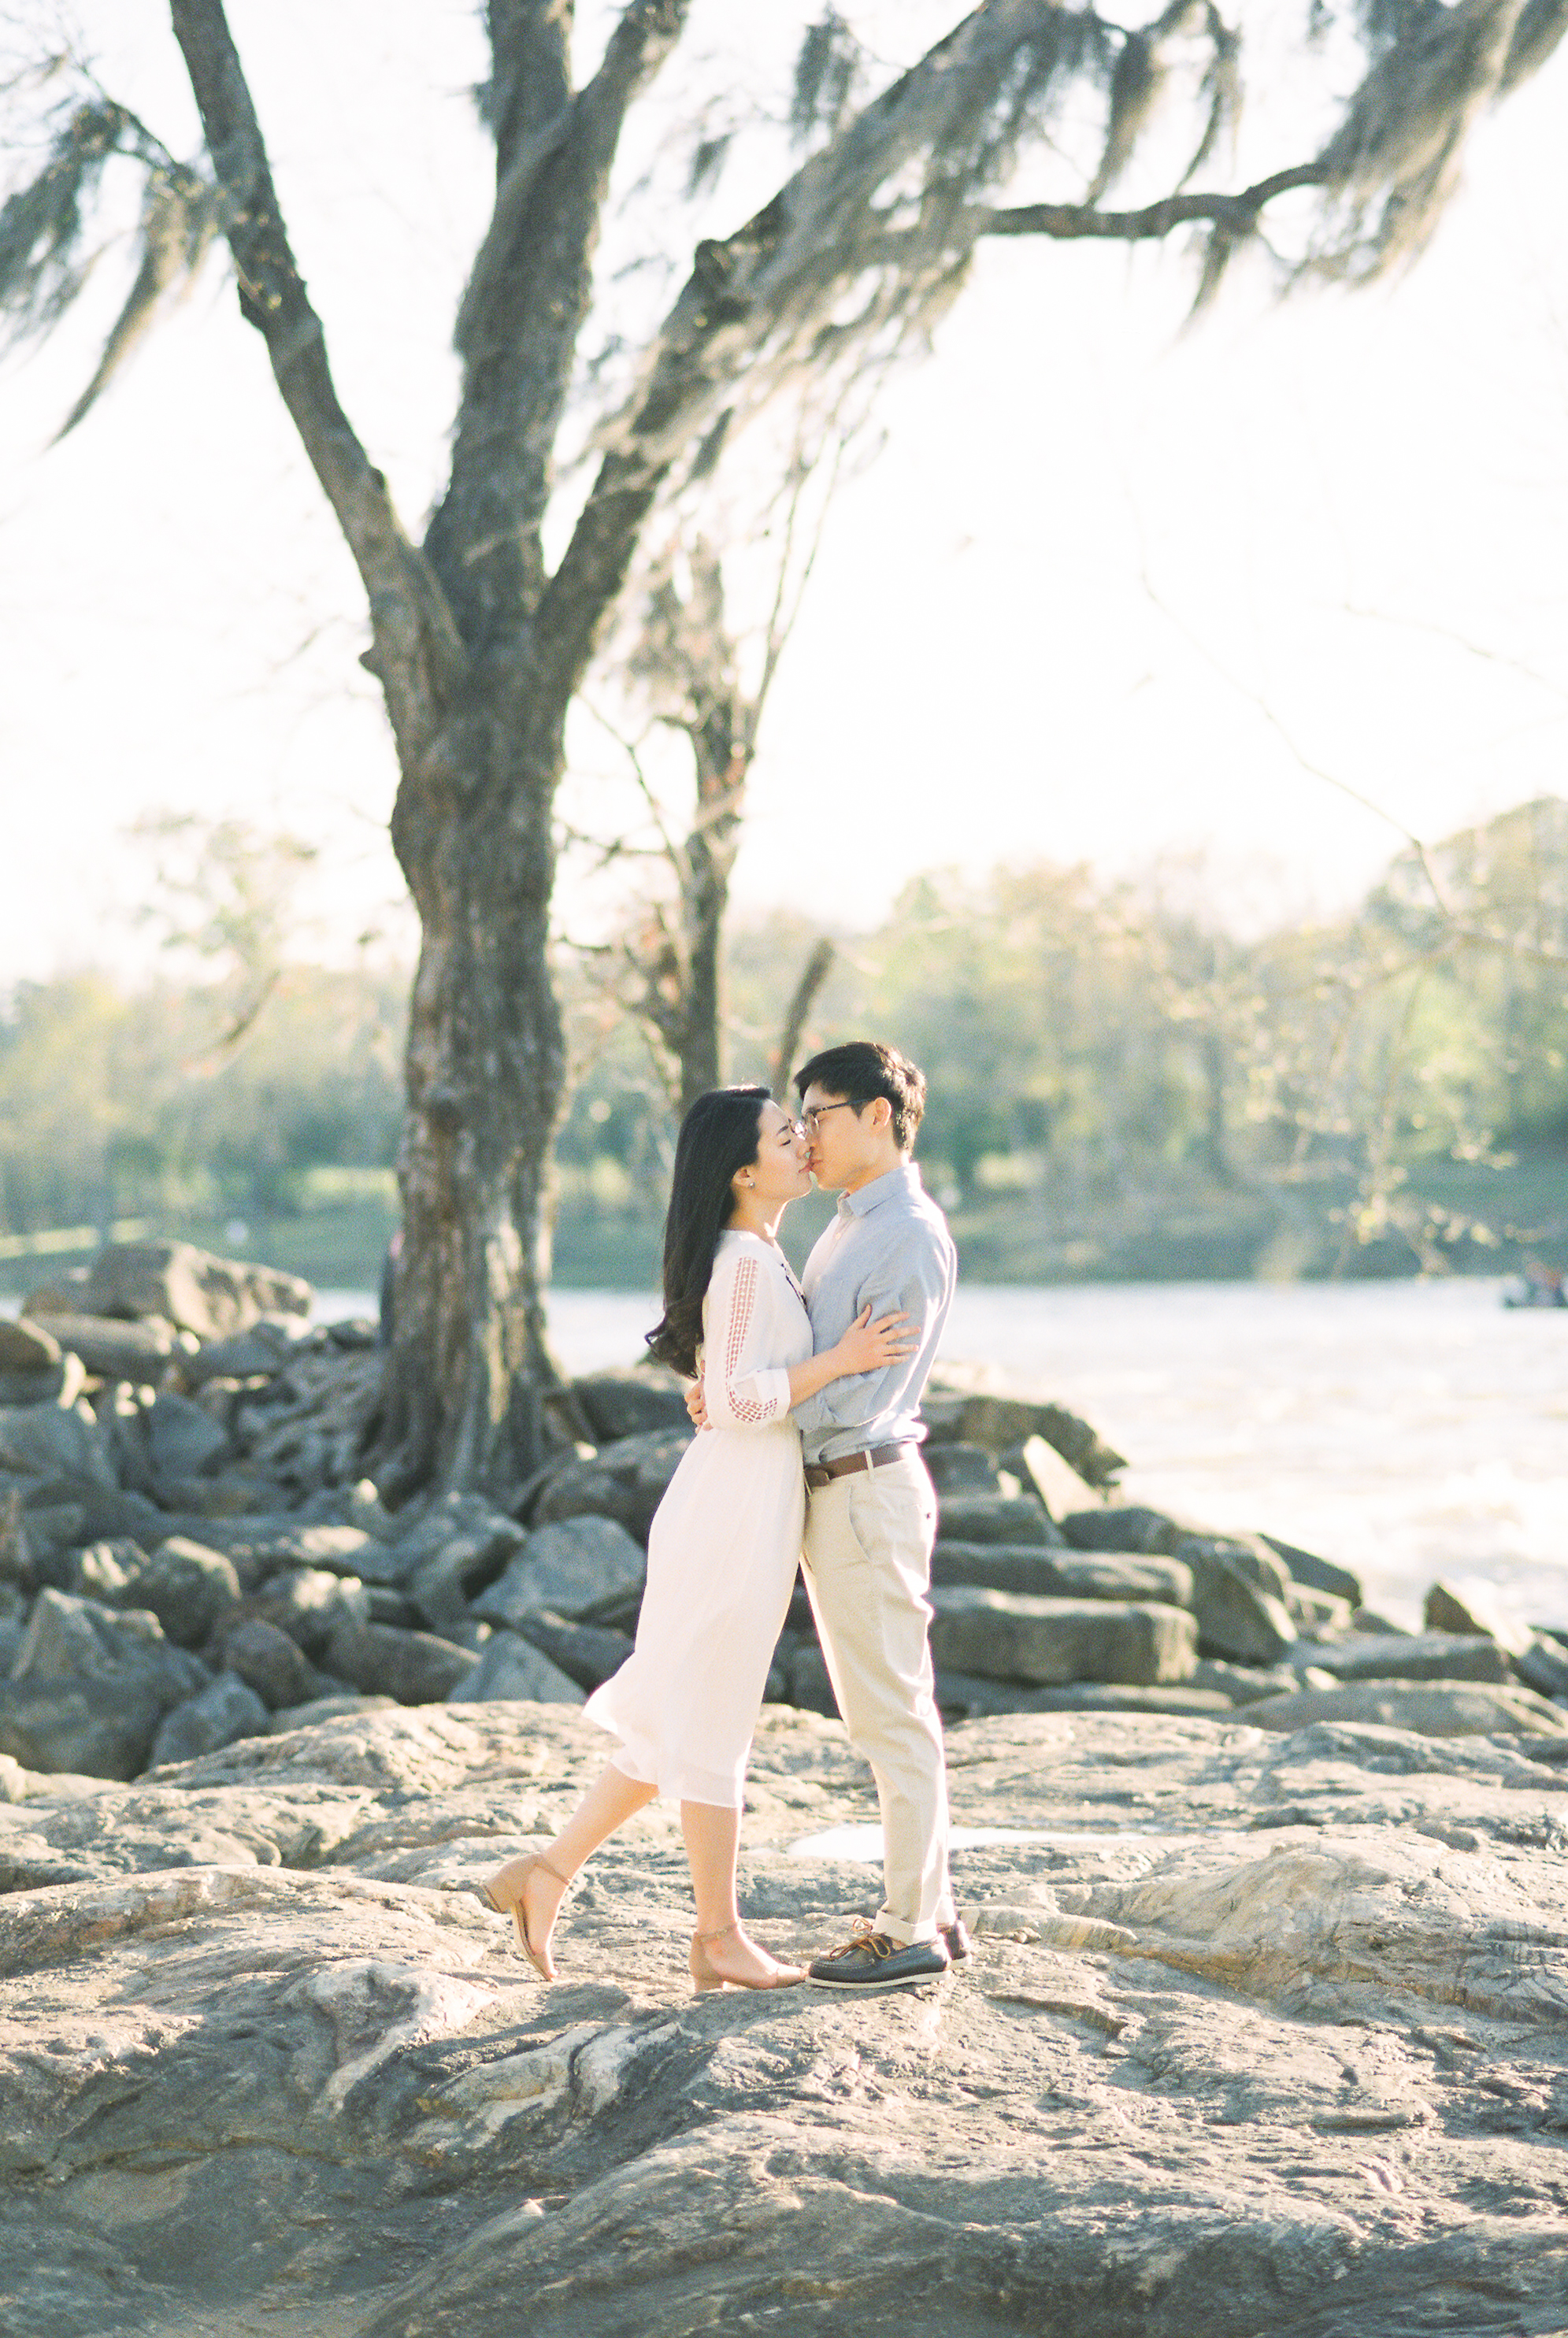 Renee_Steven_Film_Engagement_Riverwalk_Columbus_Georgia_Fallen_Photography-49.JPG